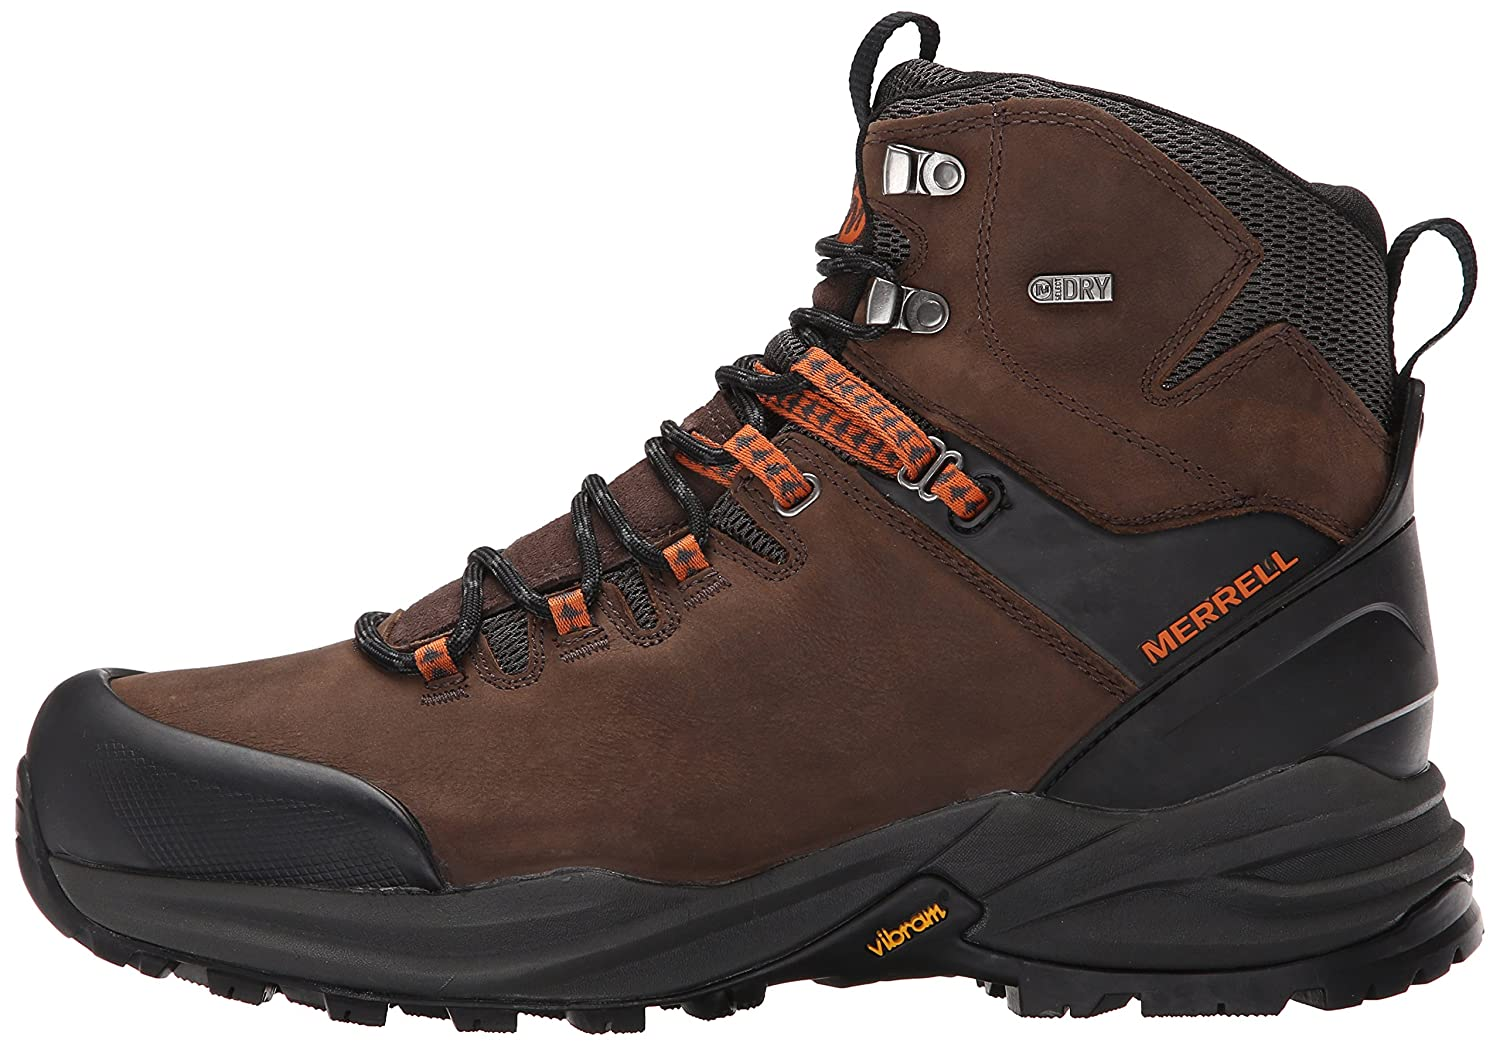 24b29be6c9d Merrell Men's Phaserbound Waterproof Hiking Boot